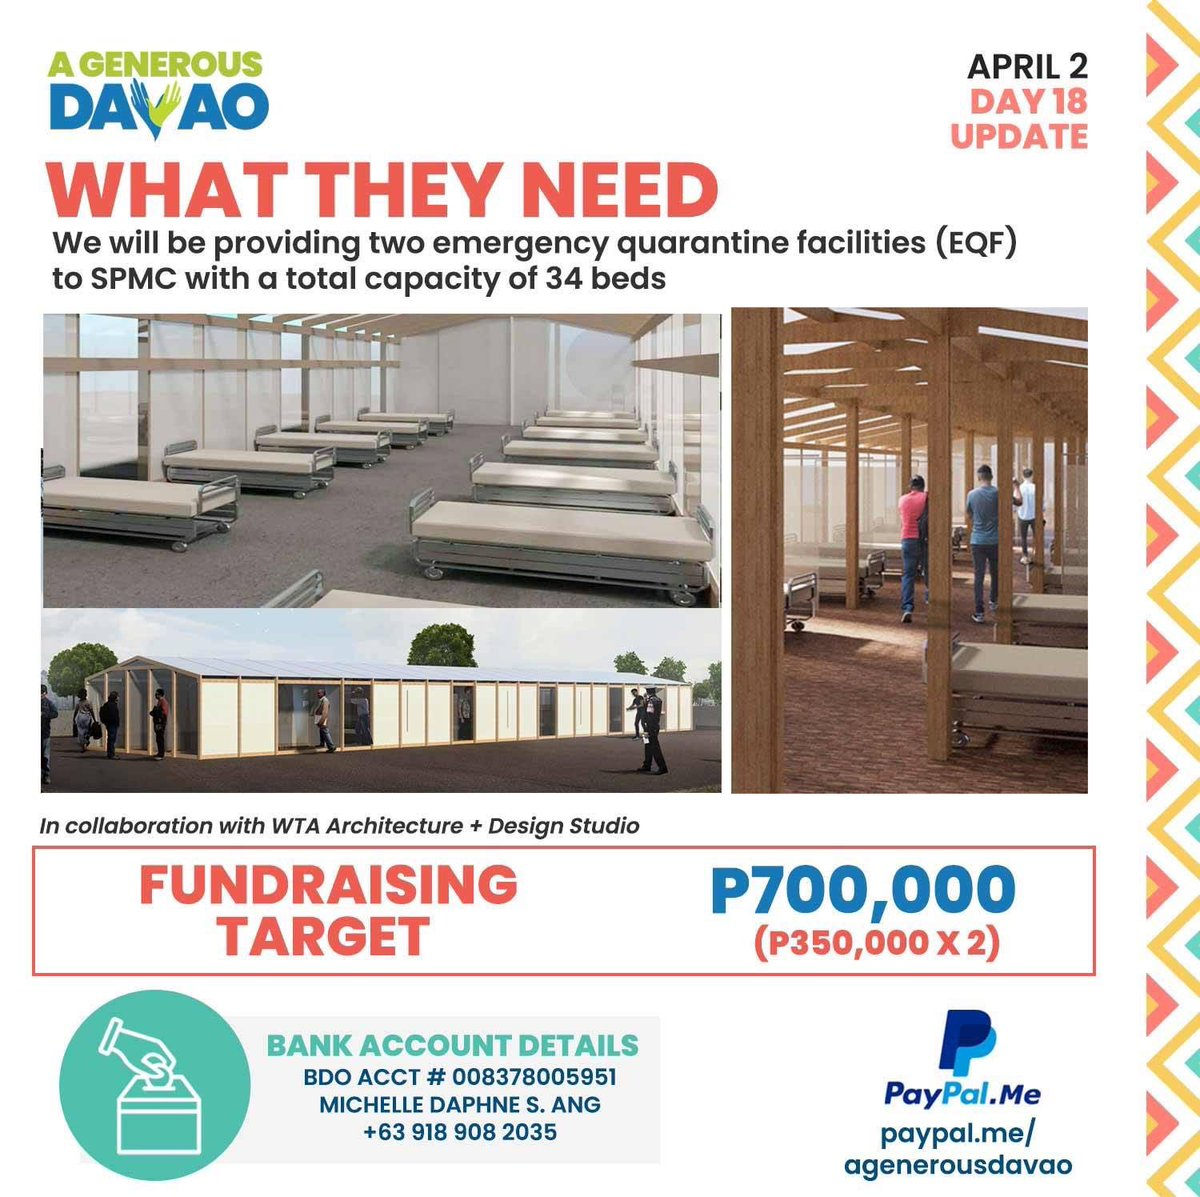 Due to the increasing number of COVID19 cases, our goals have gotten bigger! Help us fund these 2 EQFs  #AGenerousDavao #StrongerTogether <br>http://pic.twitter.com/qQt2v0LPVN